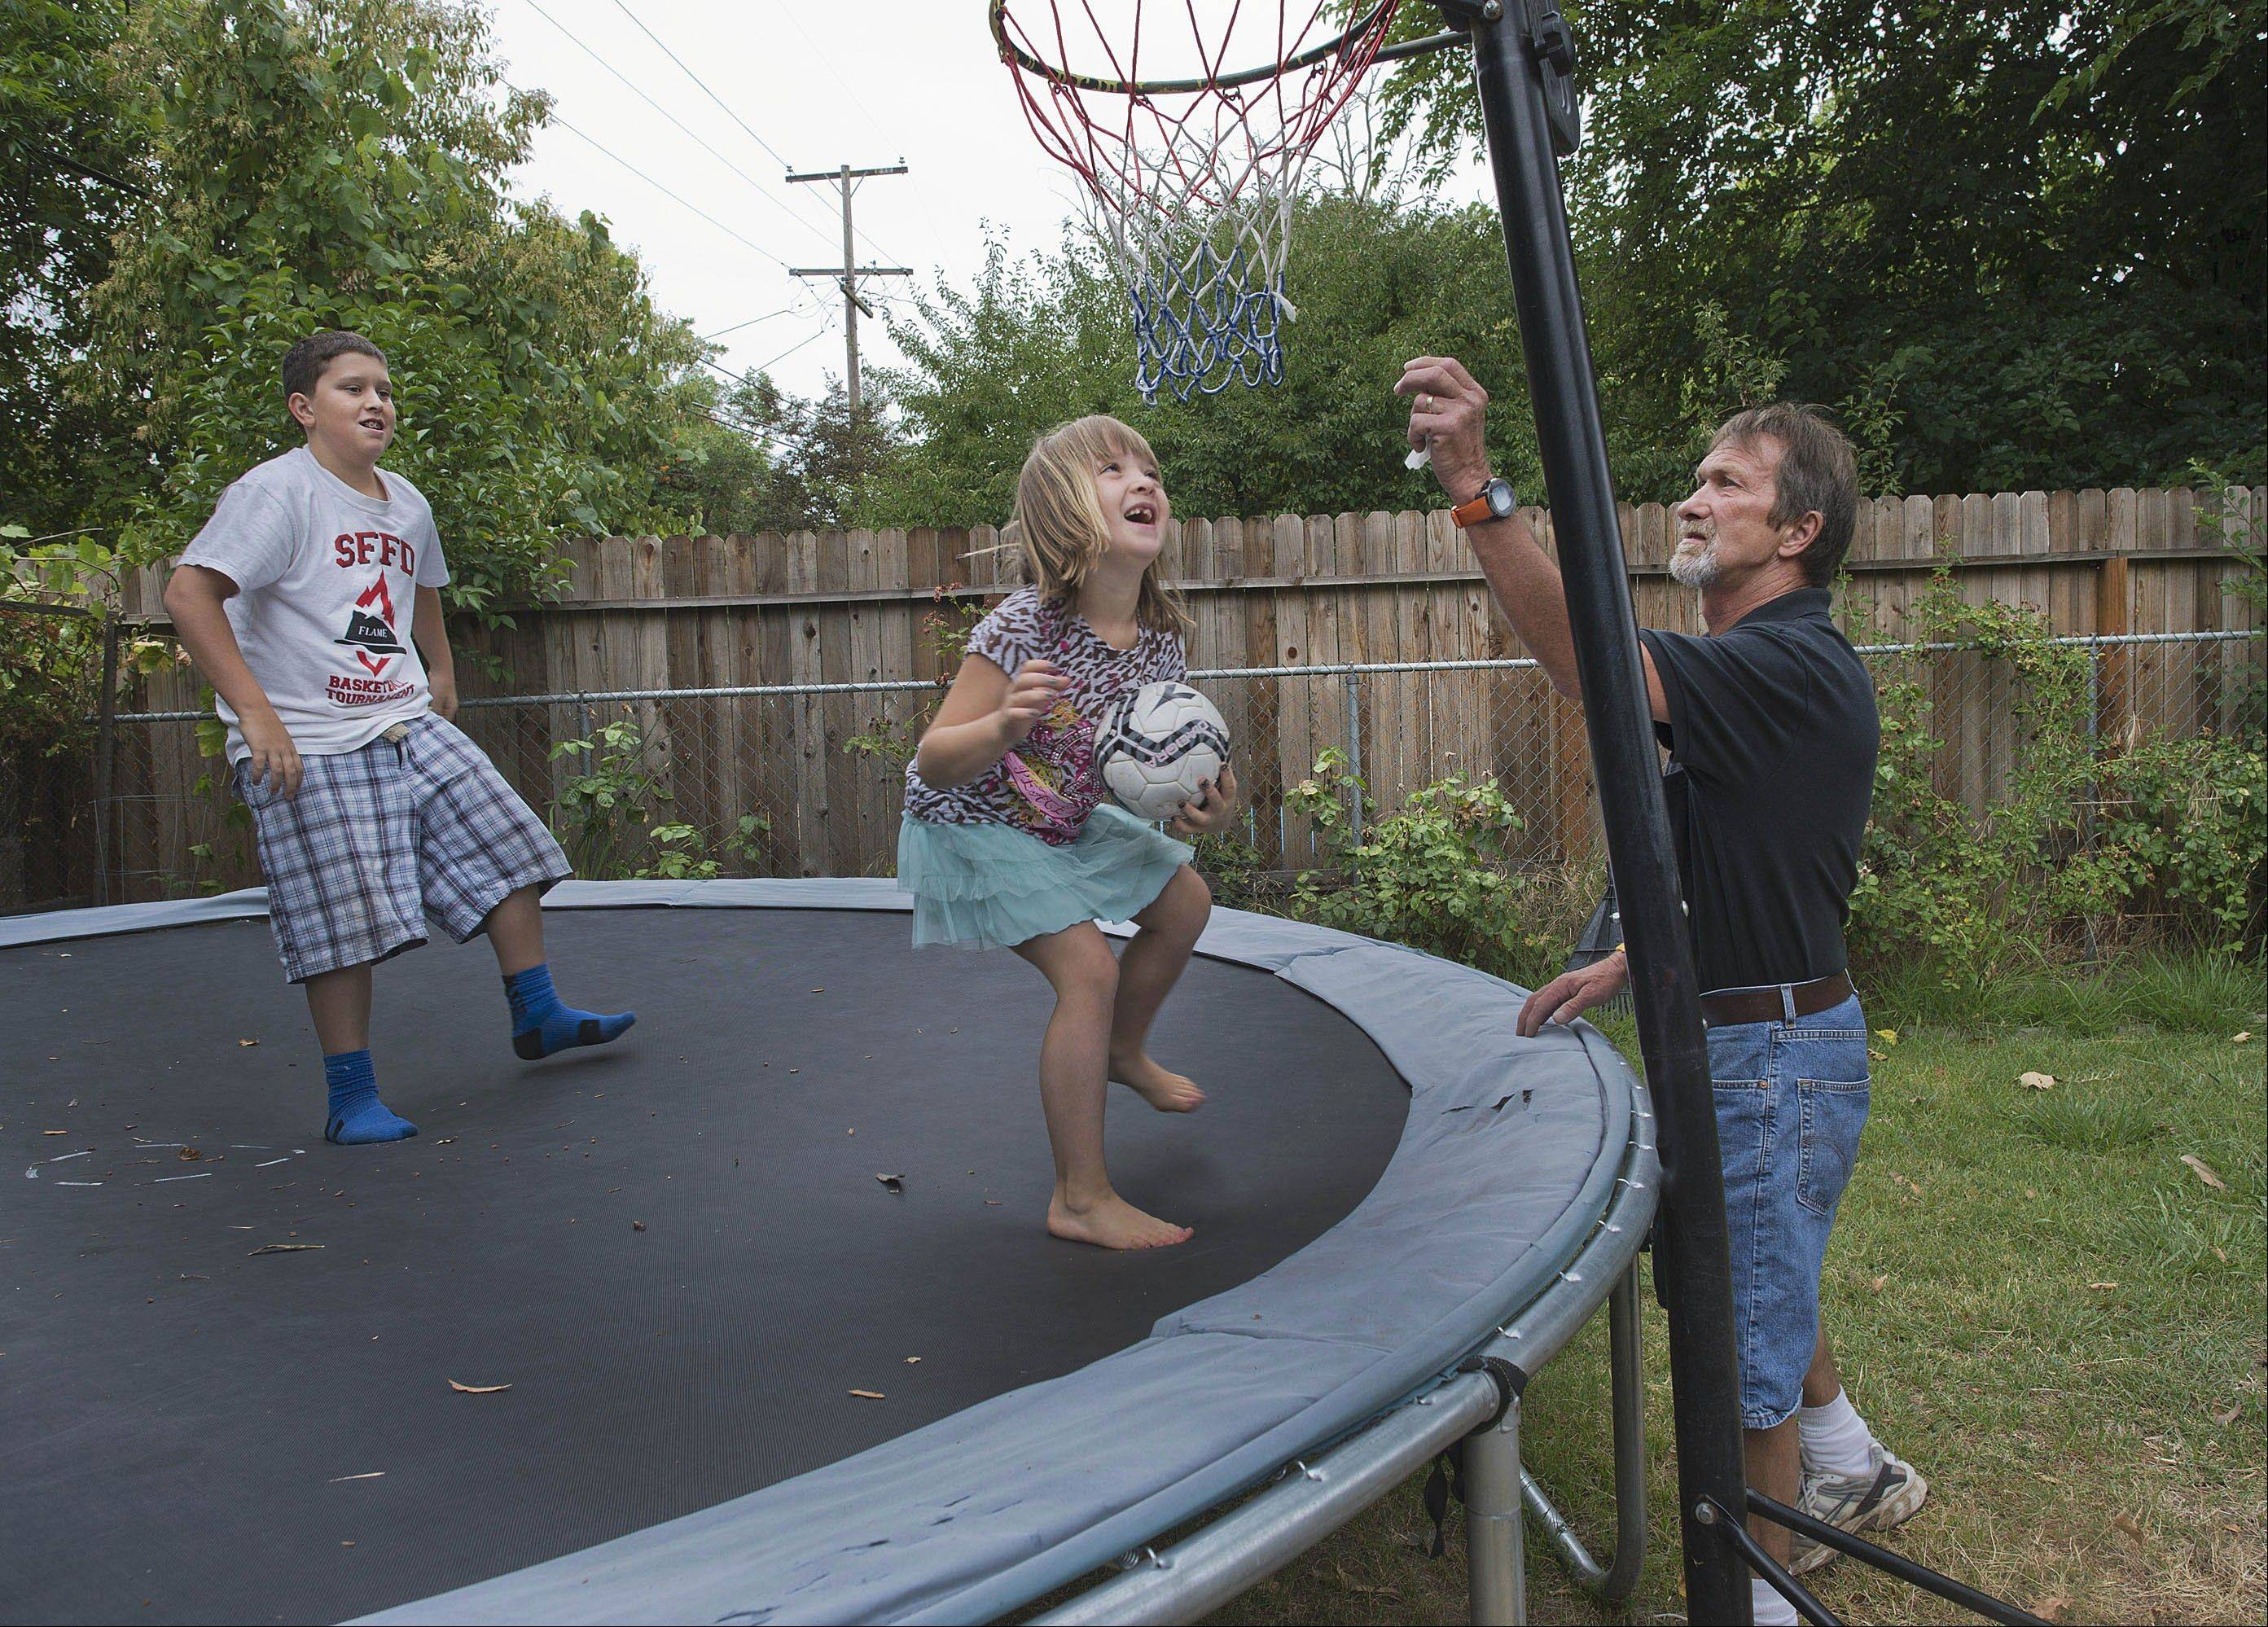 David Schooley, right, keeps a close eye on his children, Nathaniel, 12, and Hannah, 6, in their backyard.